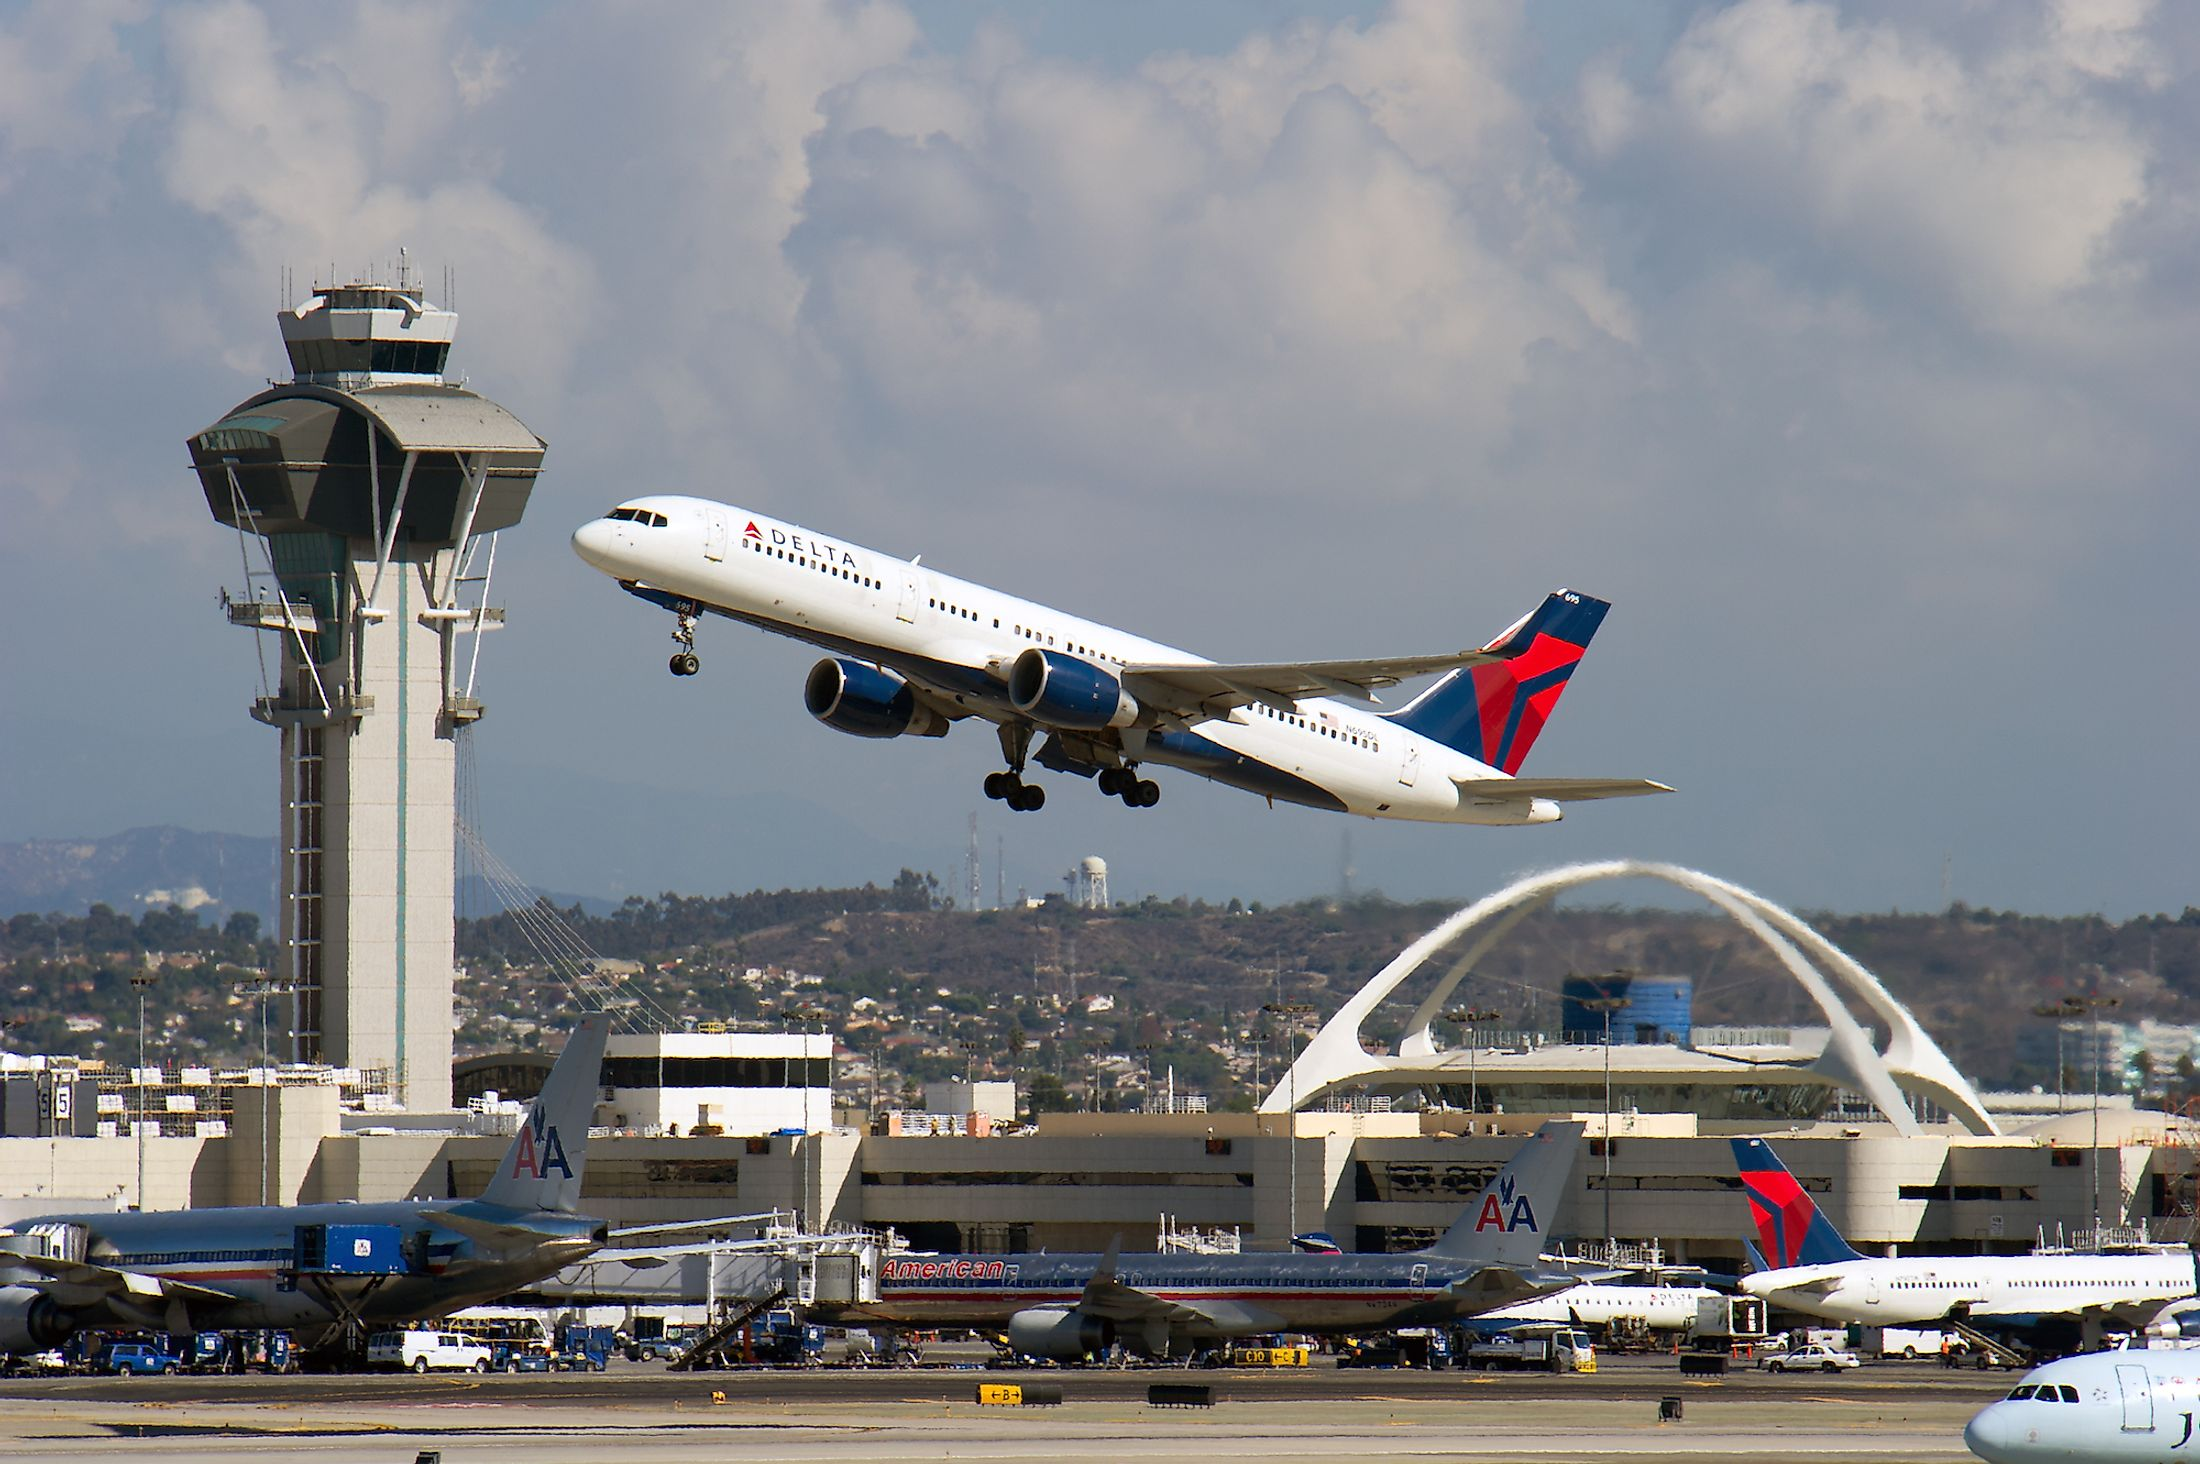 A Delta Airlines passenger jet takes off from Los Angeles International Airport in Los Angeles, CA. Image credit: Christopher Halloran/Shutterstock.com